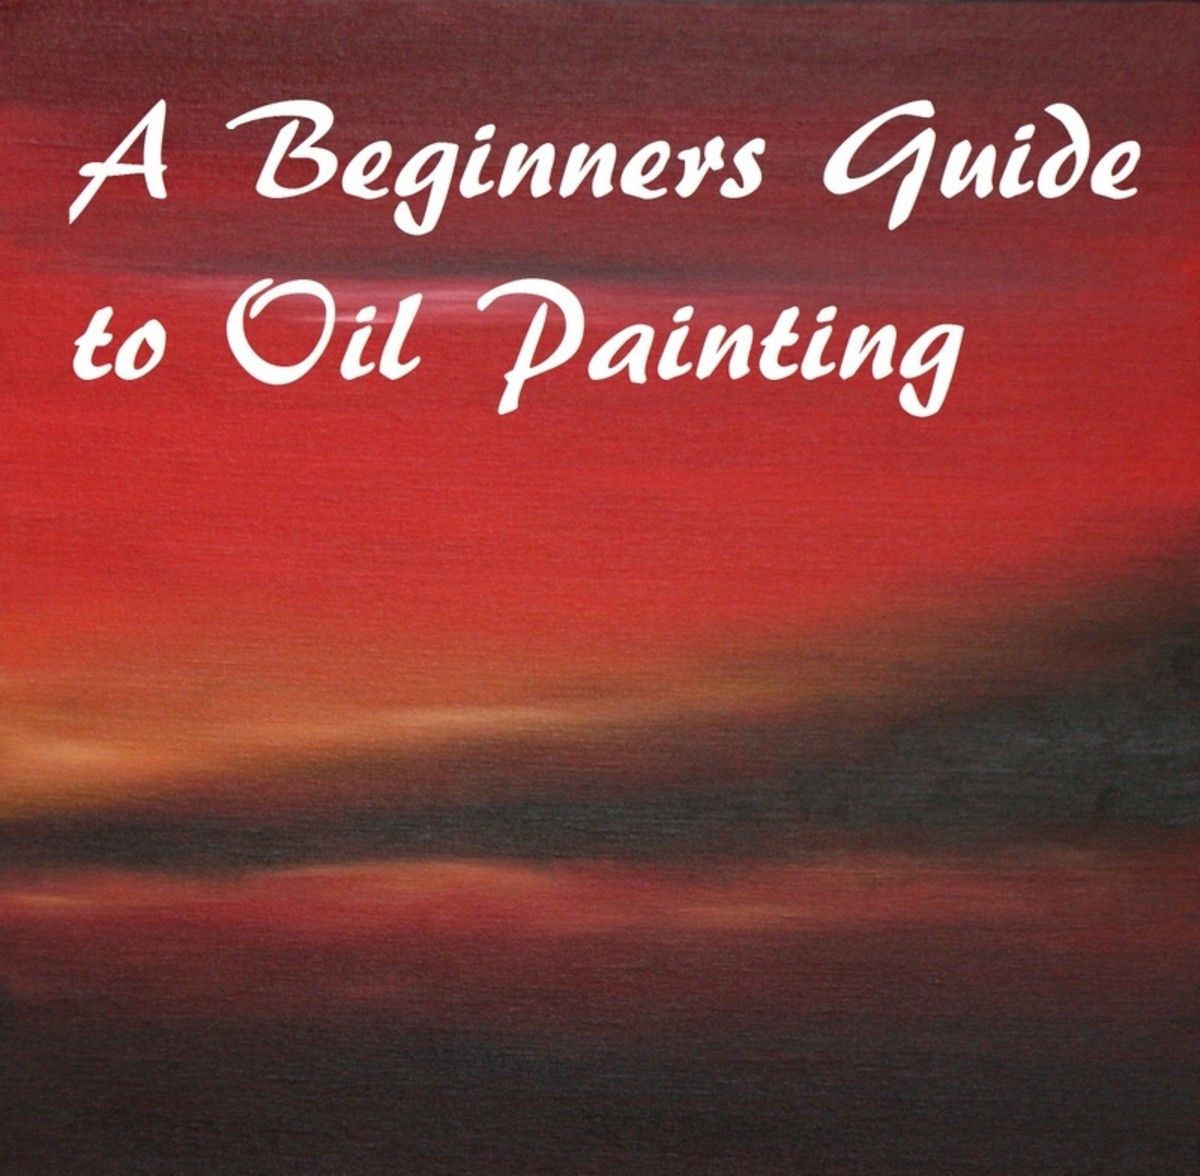 A Beginners Guide to Oil Painting